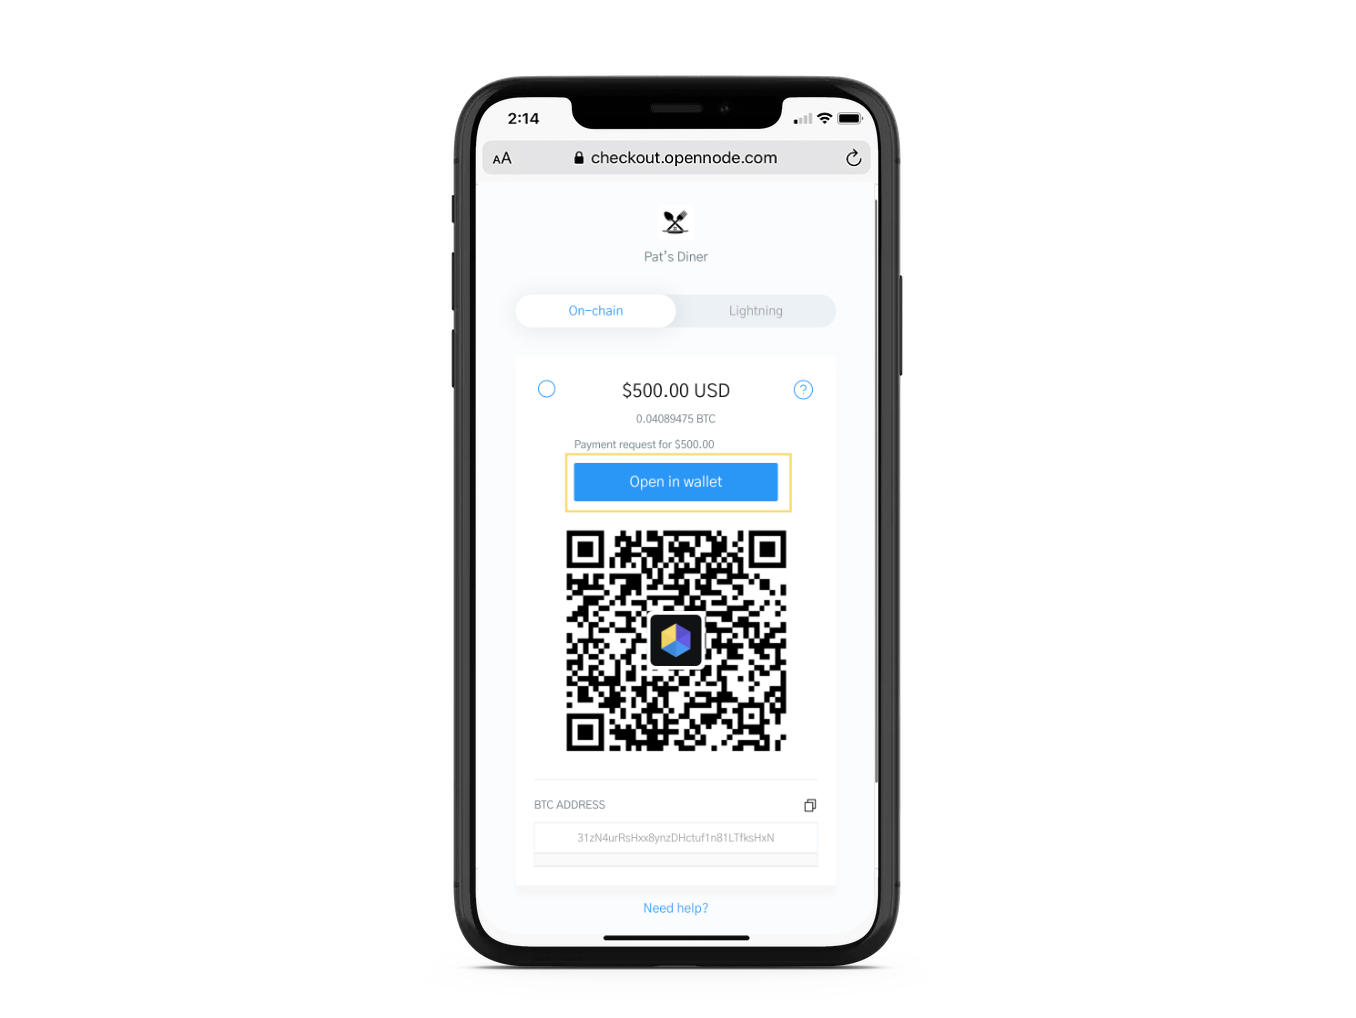 Image of a phone displaying a Bitcoin checkout on OpenNode